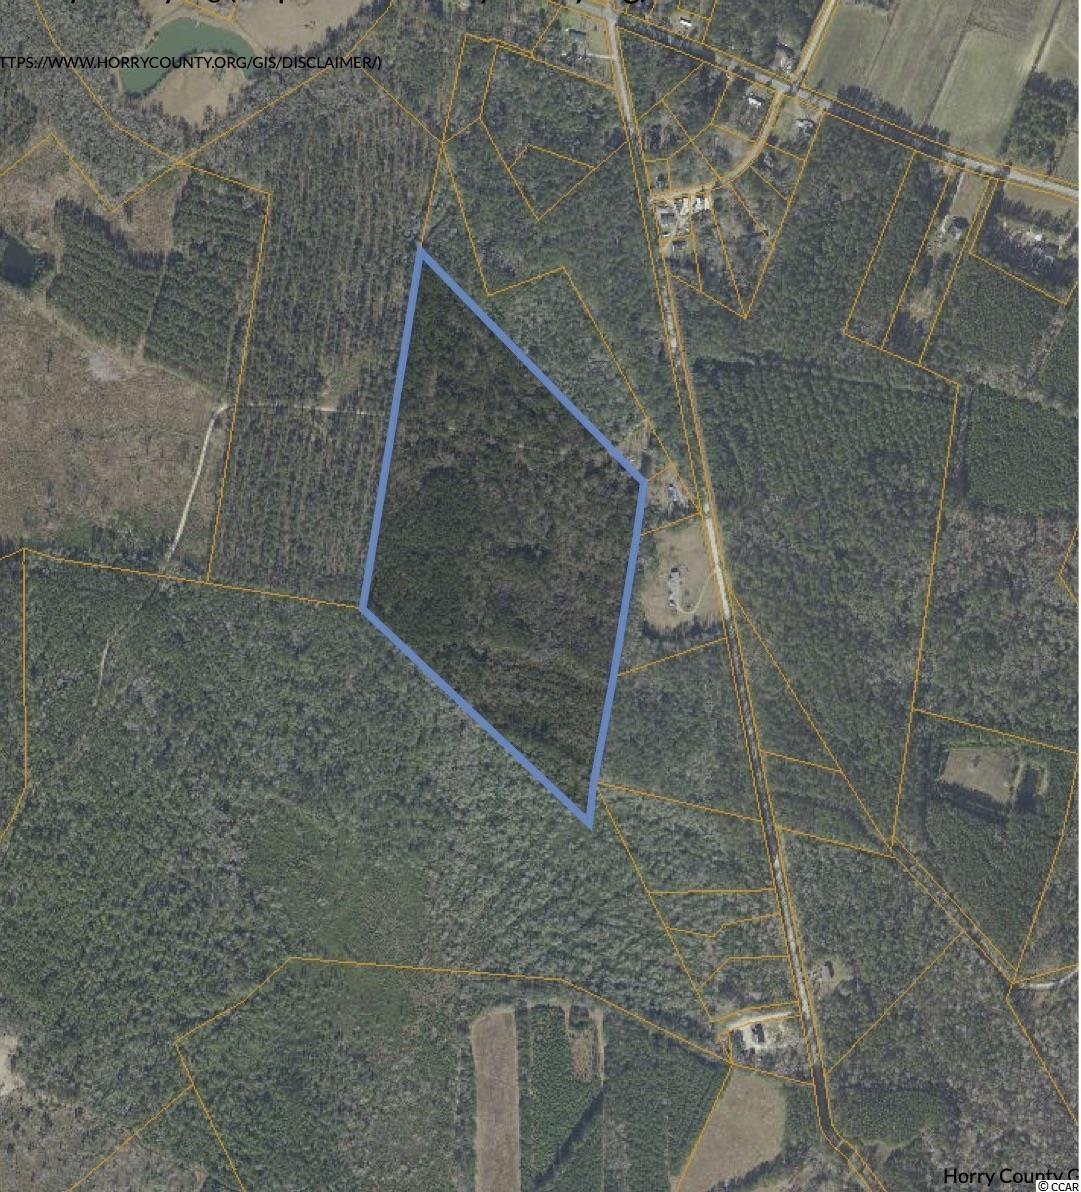 39.25 acres of natural paradise. Only 30 minutes from the beach, 15 minutes to Conway. No HOA just an amazing, private retreat. Zoned FA. All listing information is deemed reliable, but it is the buyer's responsibility to verify.